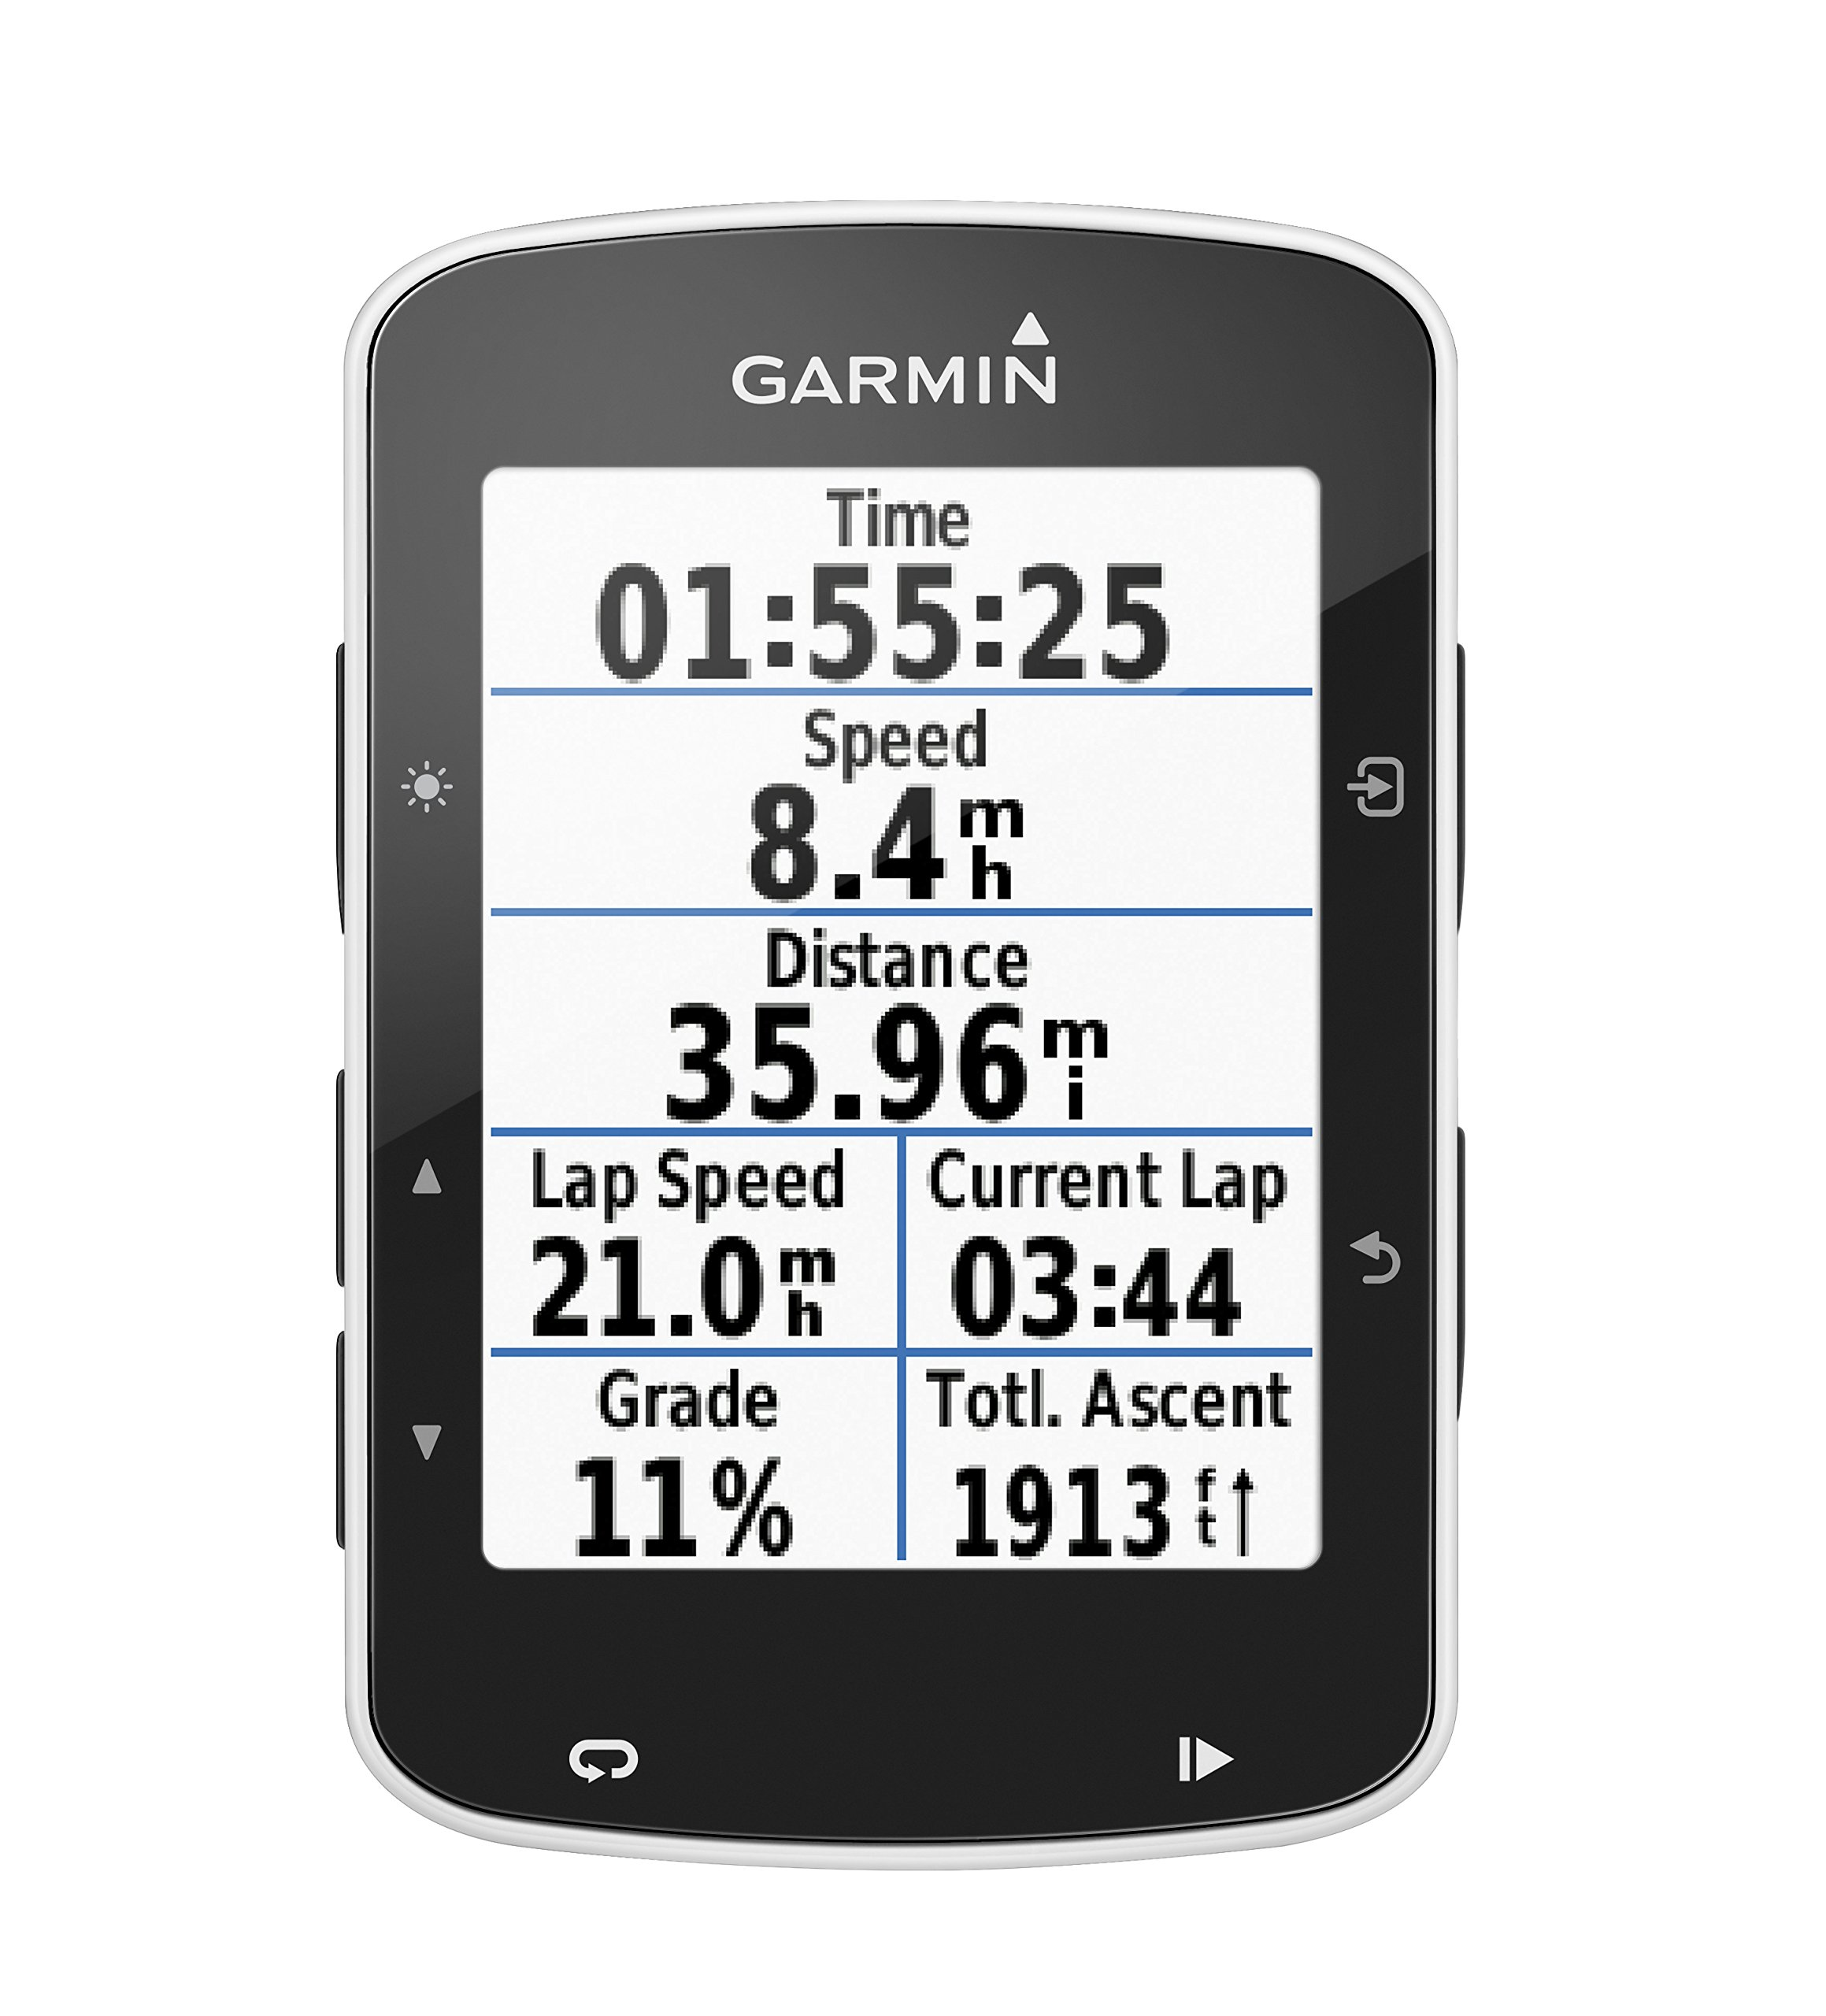 Garmin Edge 520 with PlayBetter Portable USB Charger, Hard Carrying Case, Bike Mounts & USB Cable POWER BUNDLE | High-Res Color Display | GPS Bike Computer by PlayBetter (Image #2)